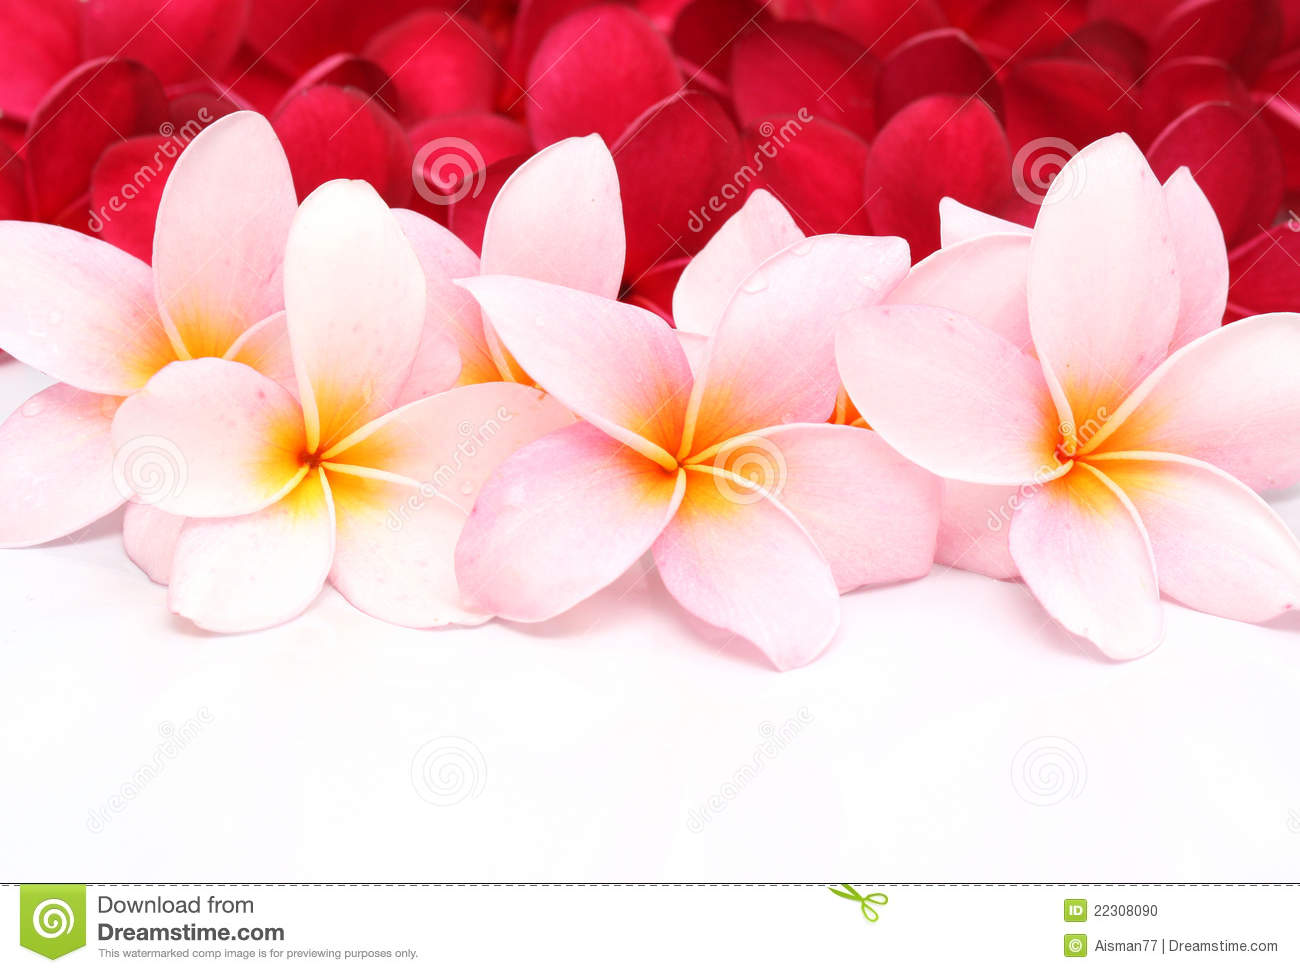 Pink plumeria flower hawaii royalty free stock photo image 25906175 pink and red frangipani plumeria flower stock photo dhlflorist Gallery